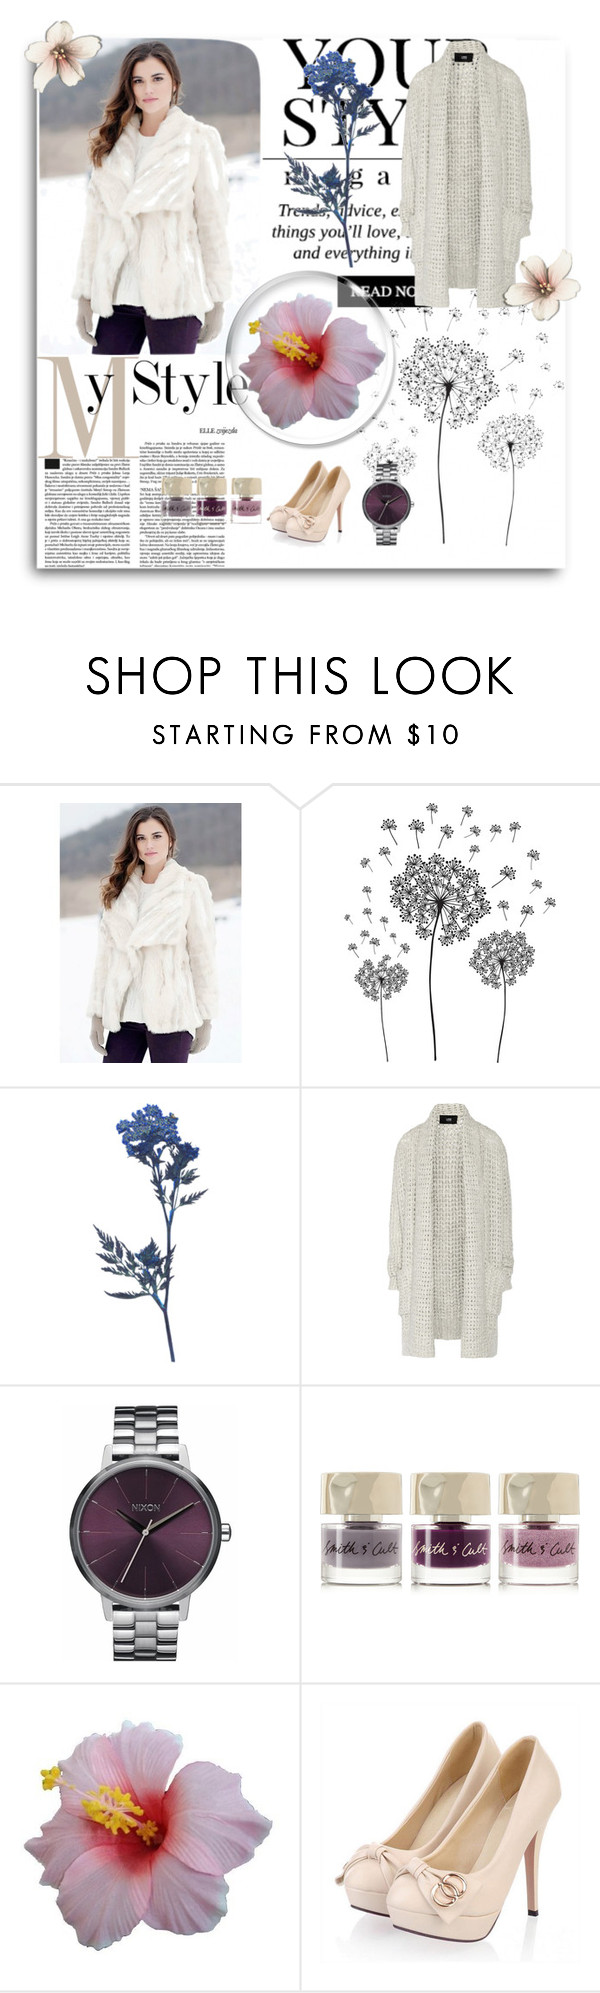 """Untitled #107"" by andreia-s5 ❤ liked on Polyvore featuring Fabulous-Furs, jcp, Line, Nixon, Smith & Cult and Pussycat"